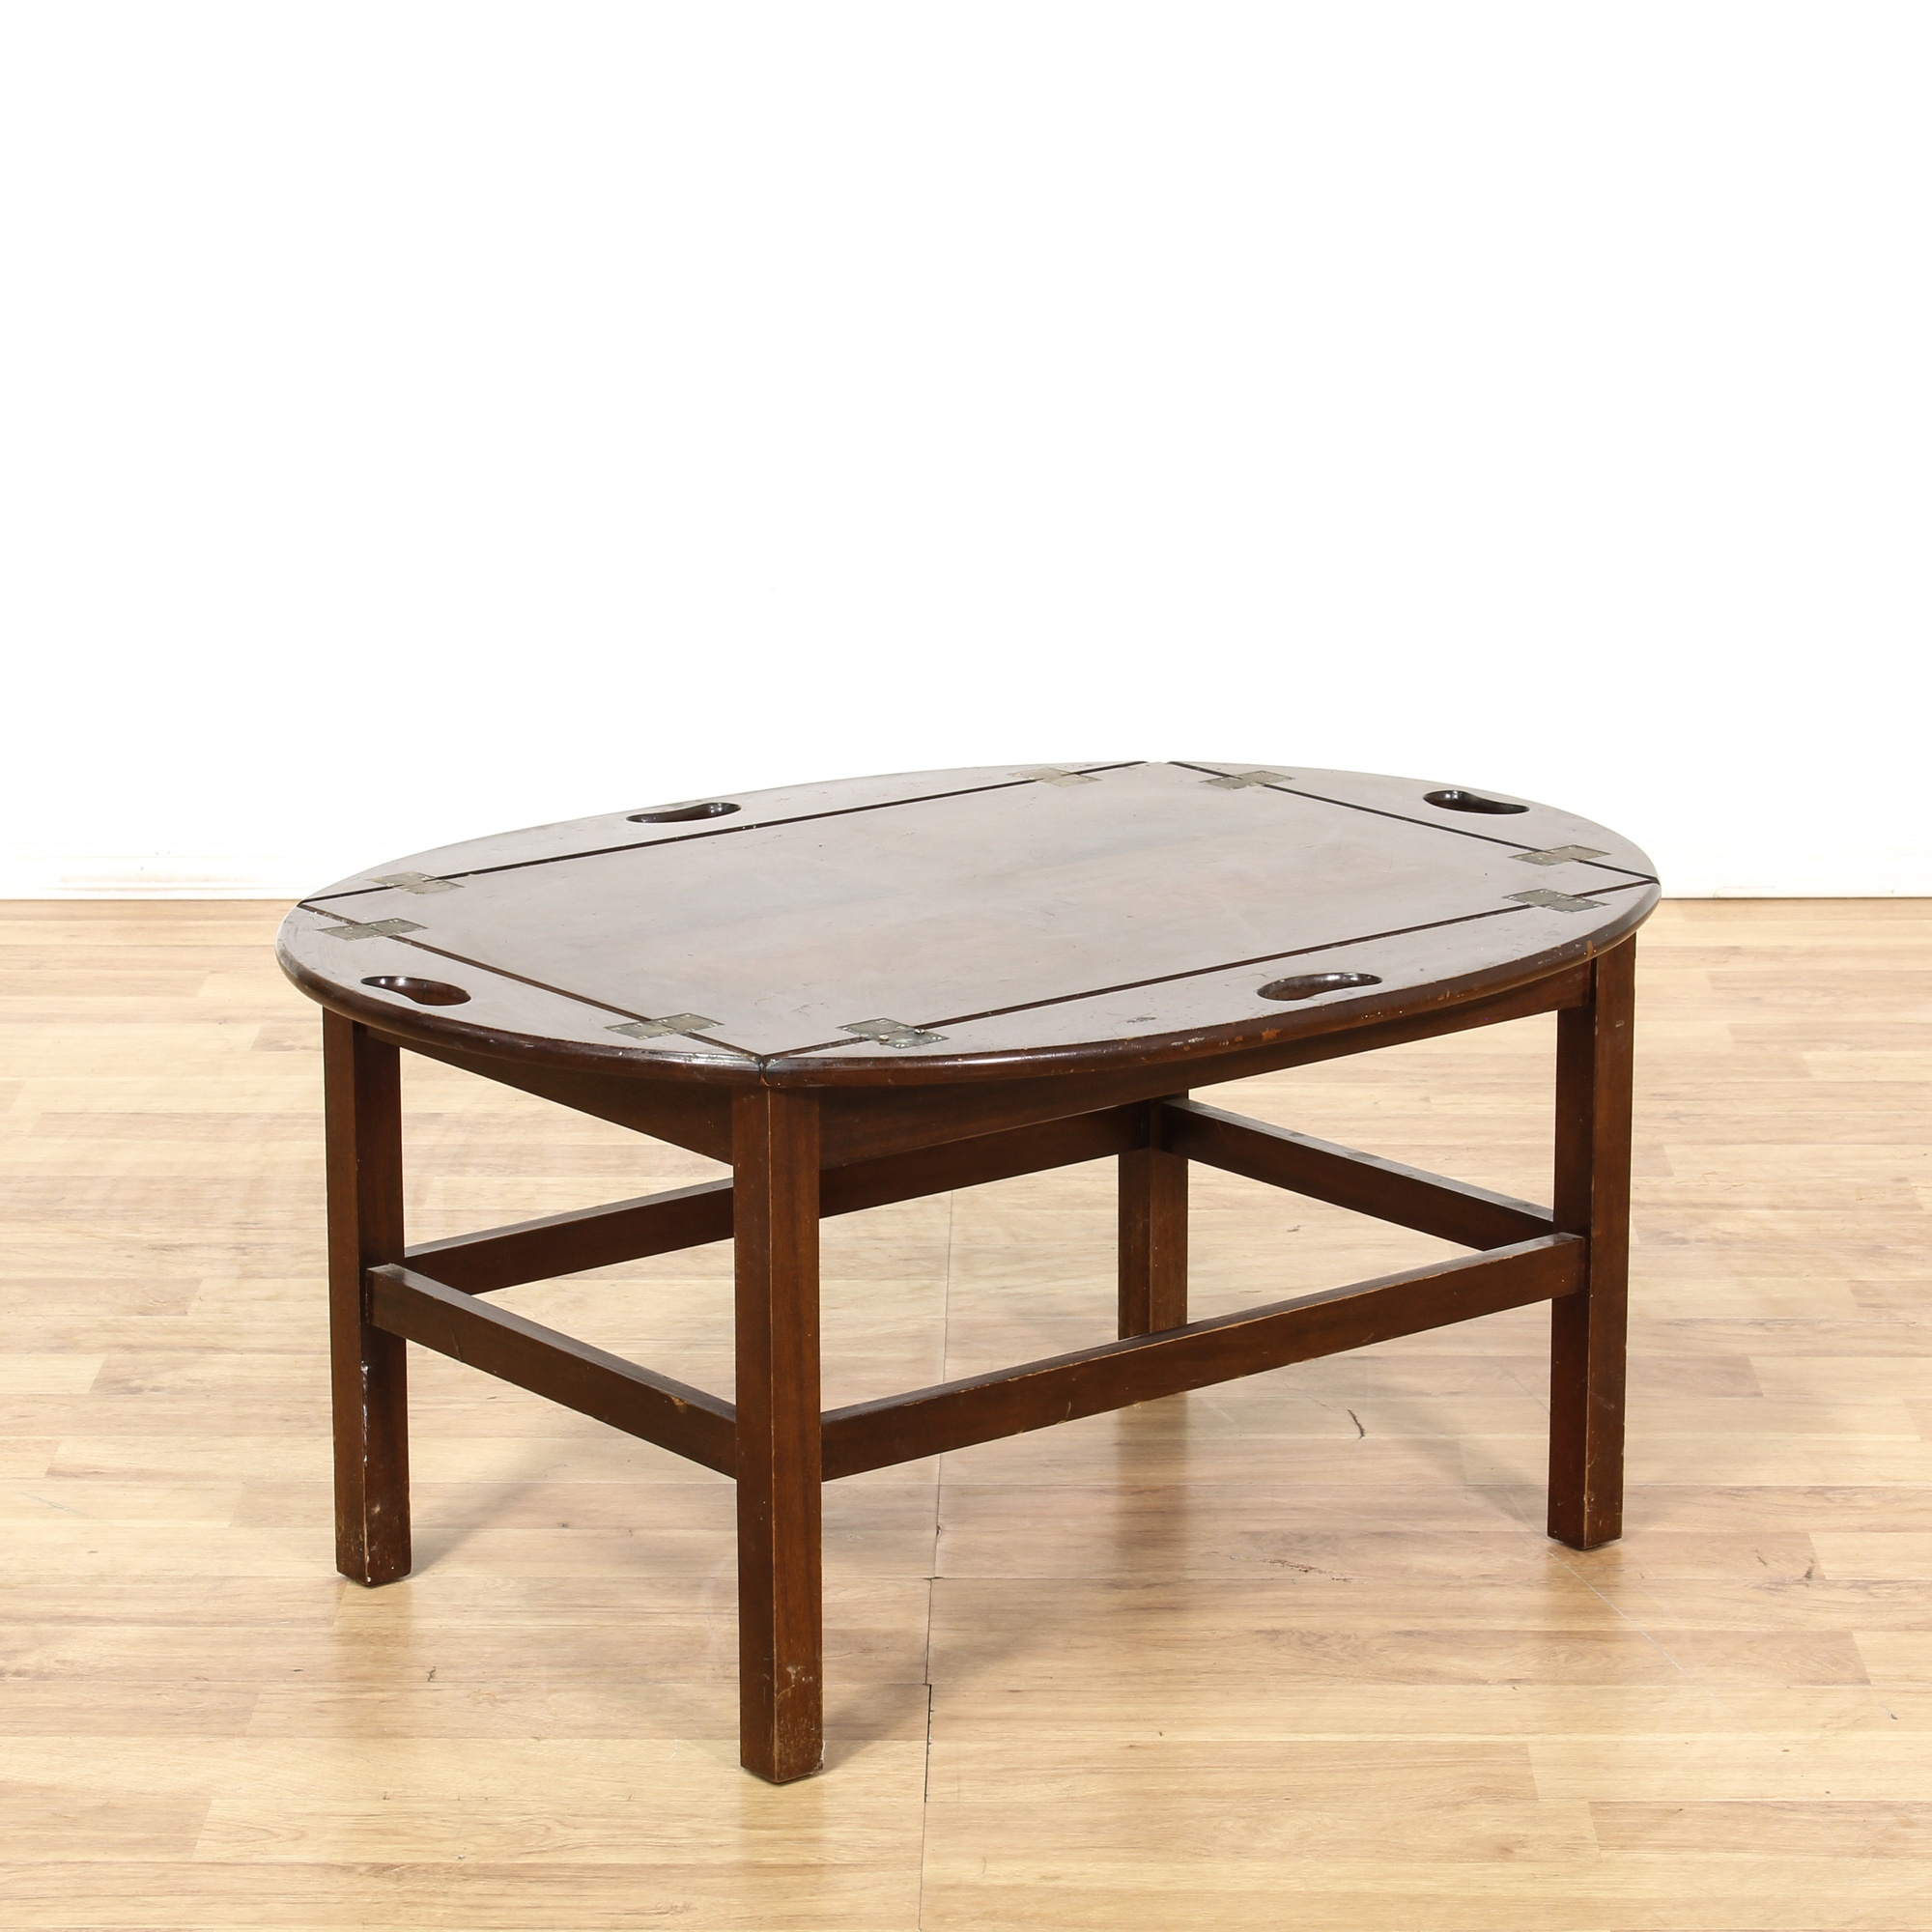 Oval Wooden Coffee Table With Shelf: Oval Hinged Sides Wooden Coffee Table